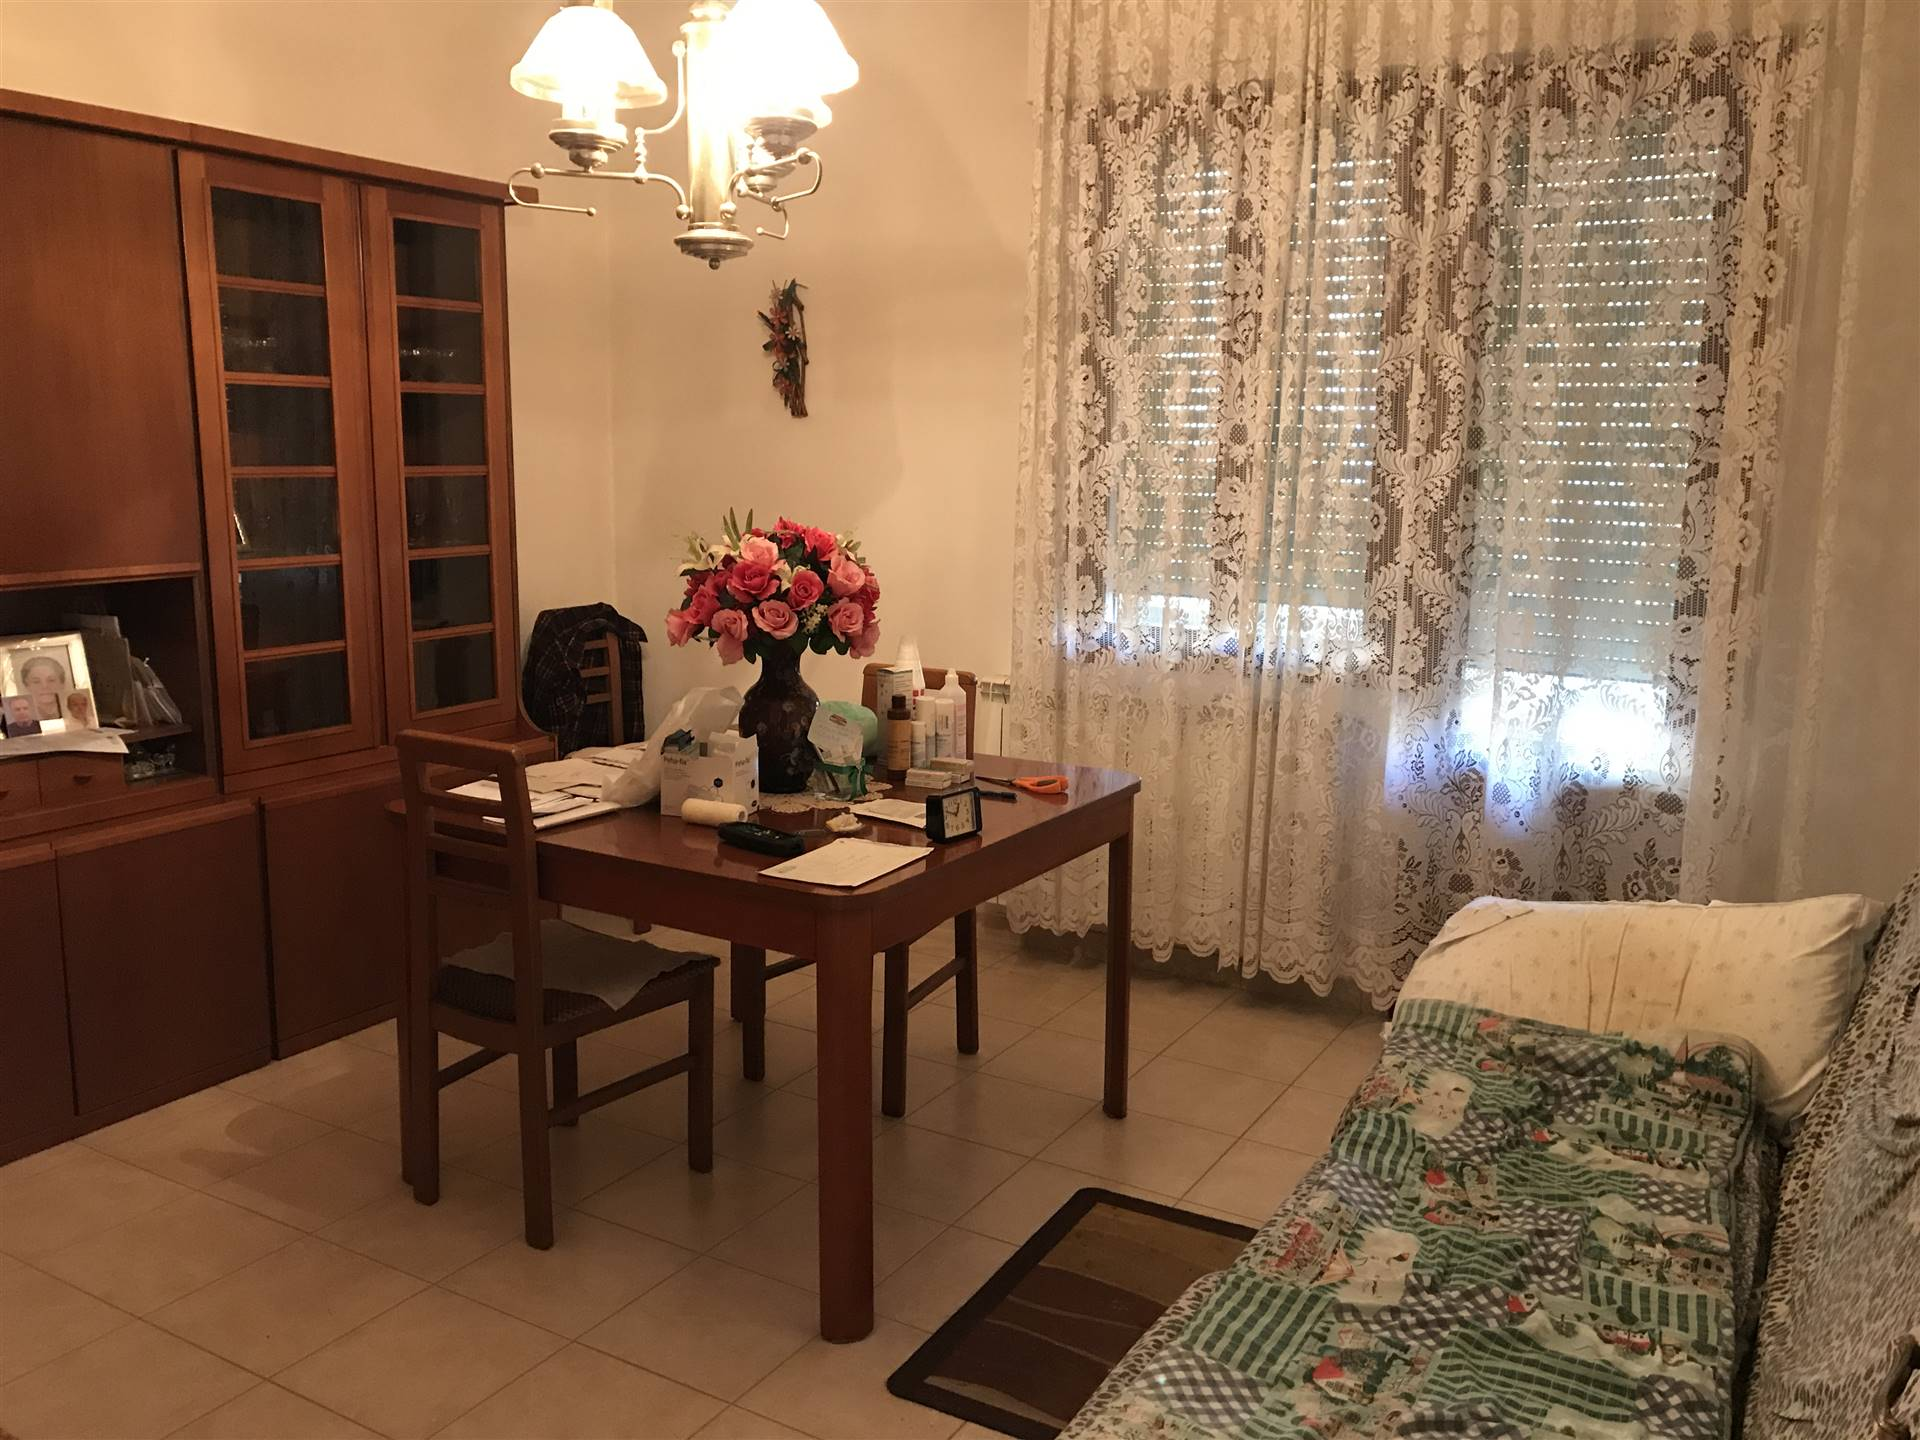 SOTTOMARINA, CHIOGGIA, Detached house for sale of 200 Sq. mt., Habitable, Heating Individual heating system, Energetic class: G, composed by: 10